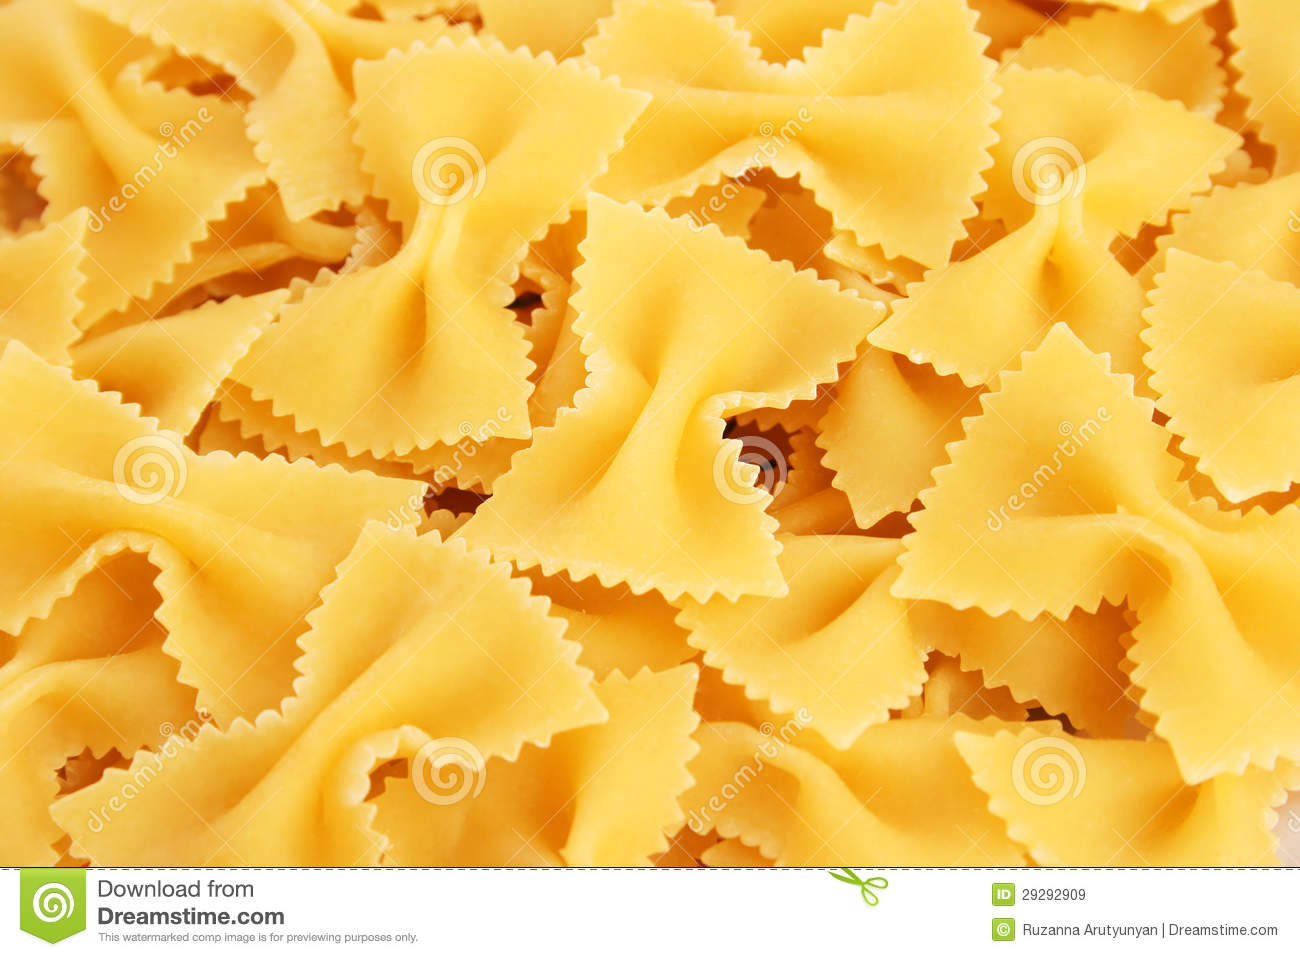 Pasta Background Royalty Free Stock Images - Image: 29292909